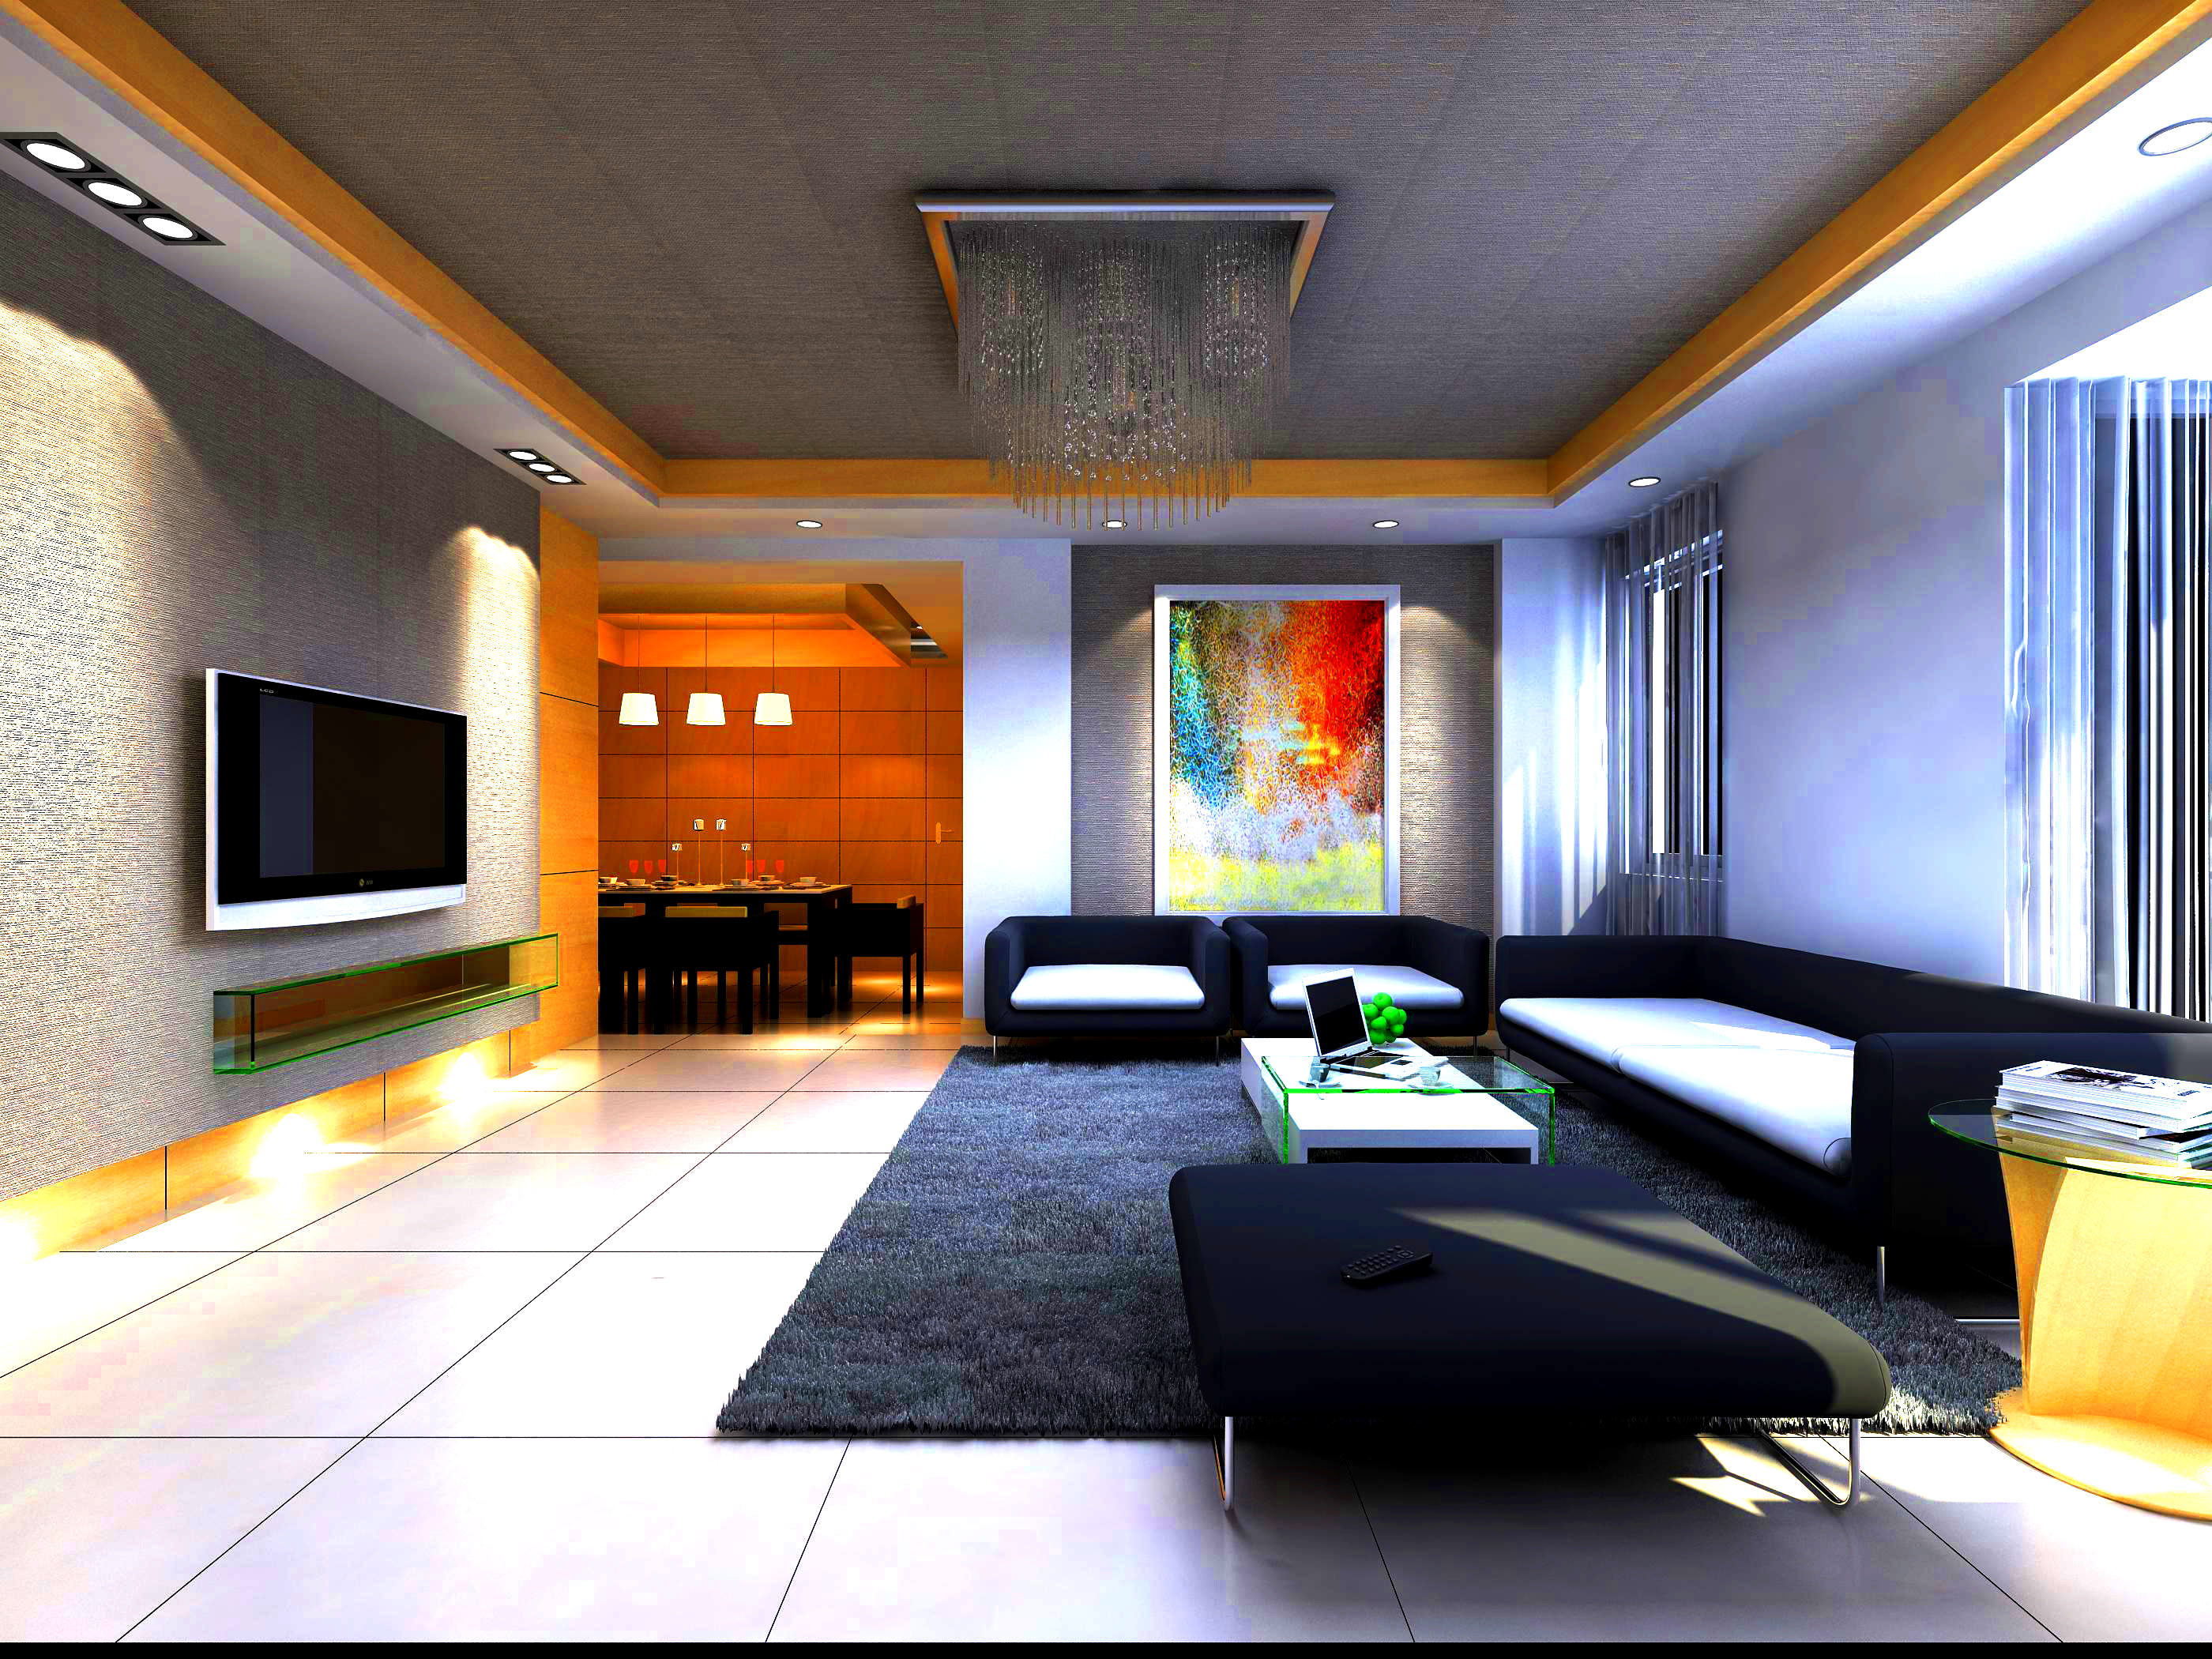 State of the art living space 3d model max for State of the art furniture